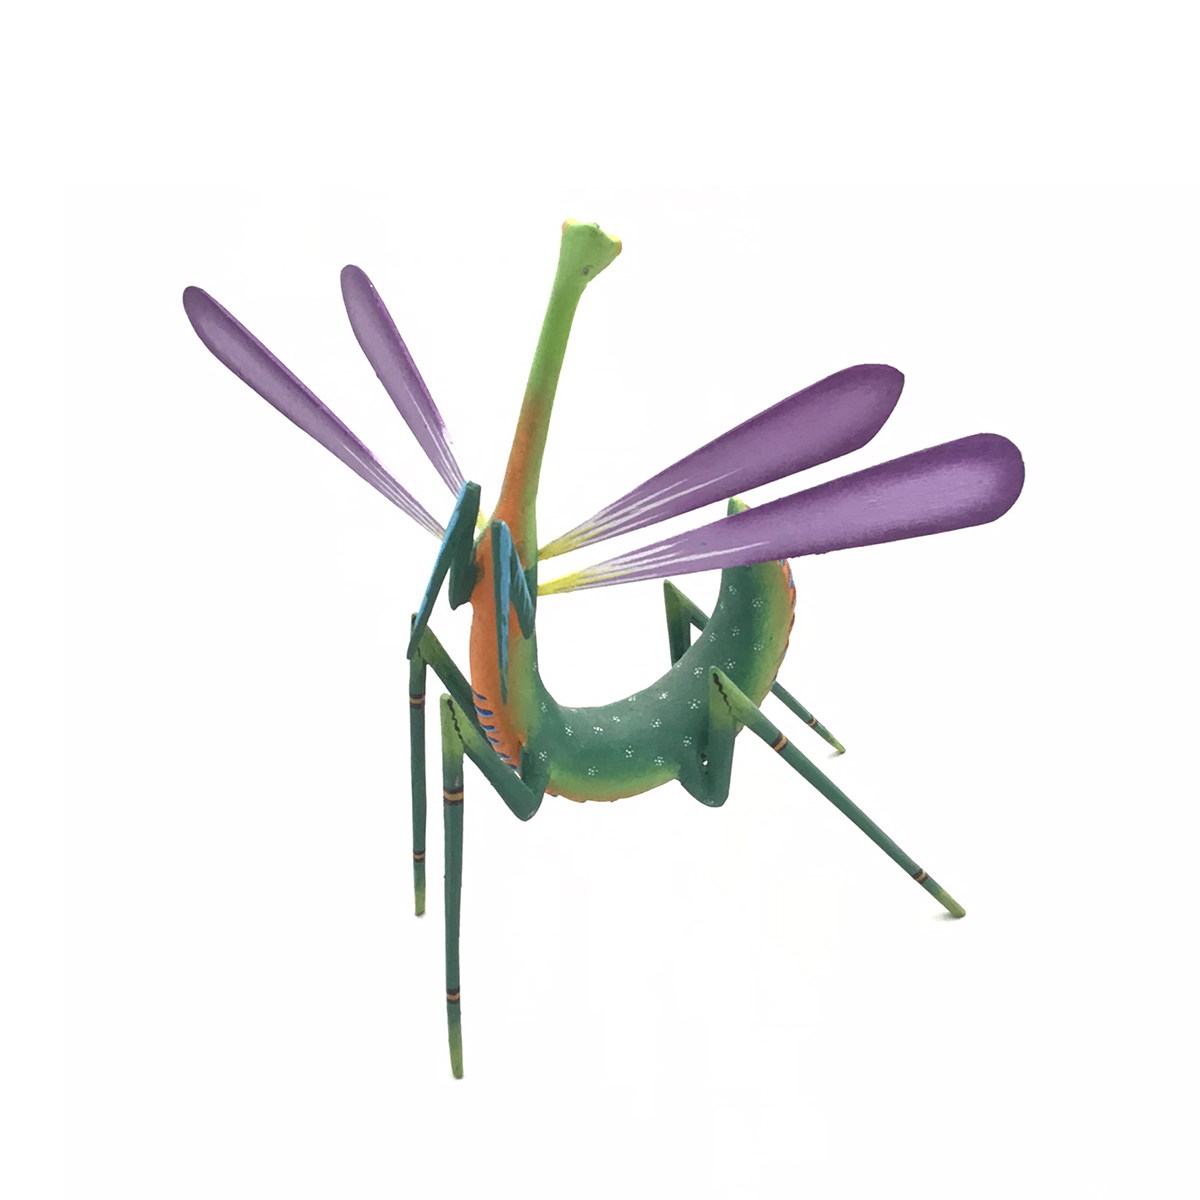 Tribus Mixes Tribus Mixes: Small Mantis Insects